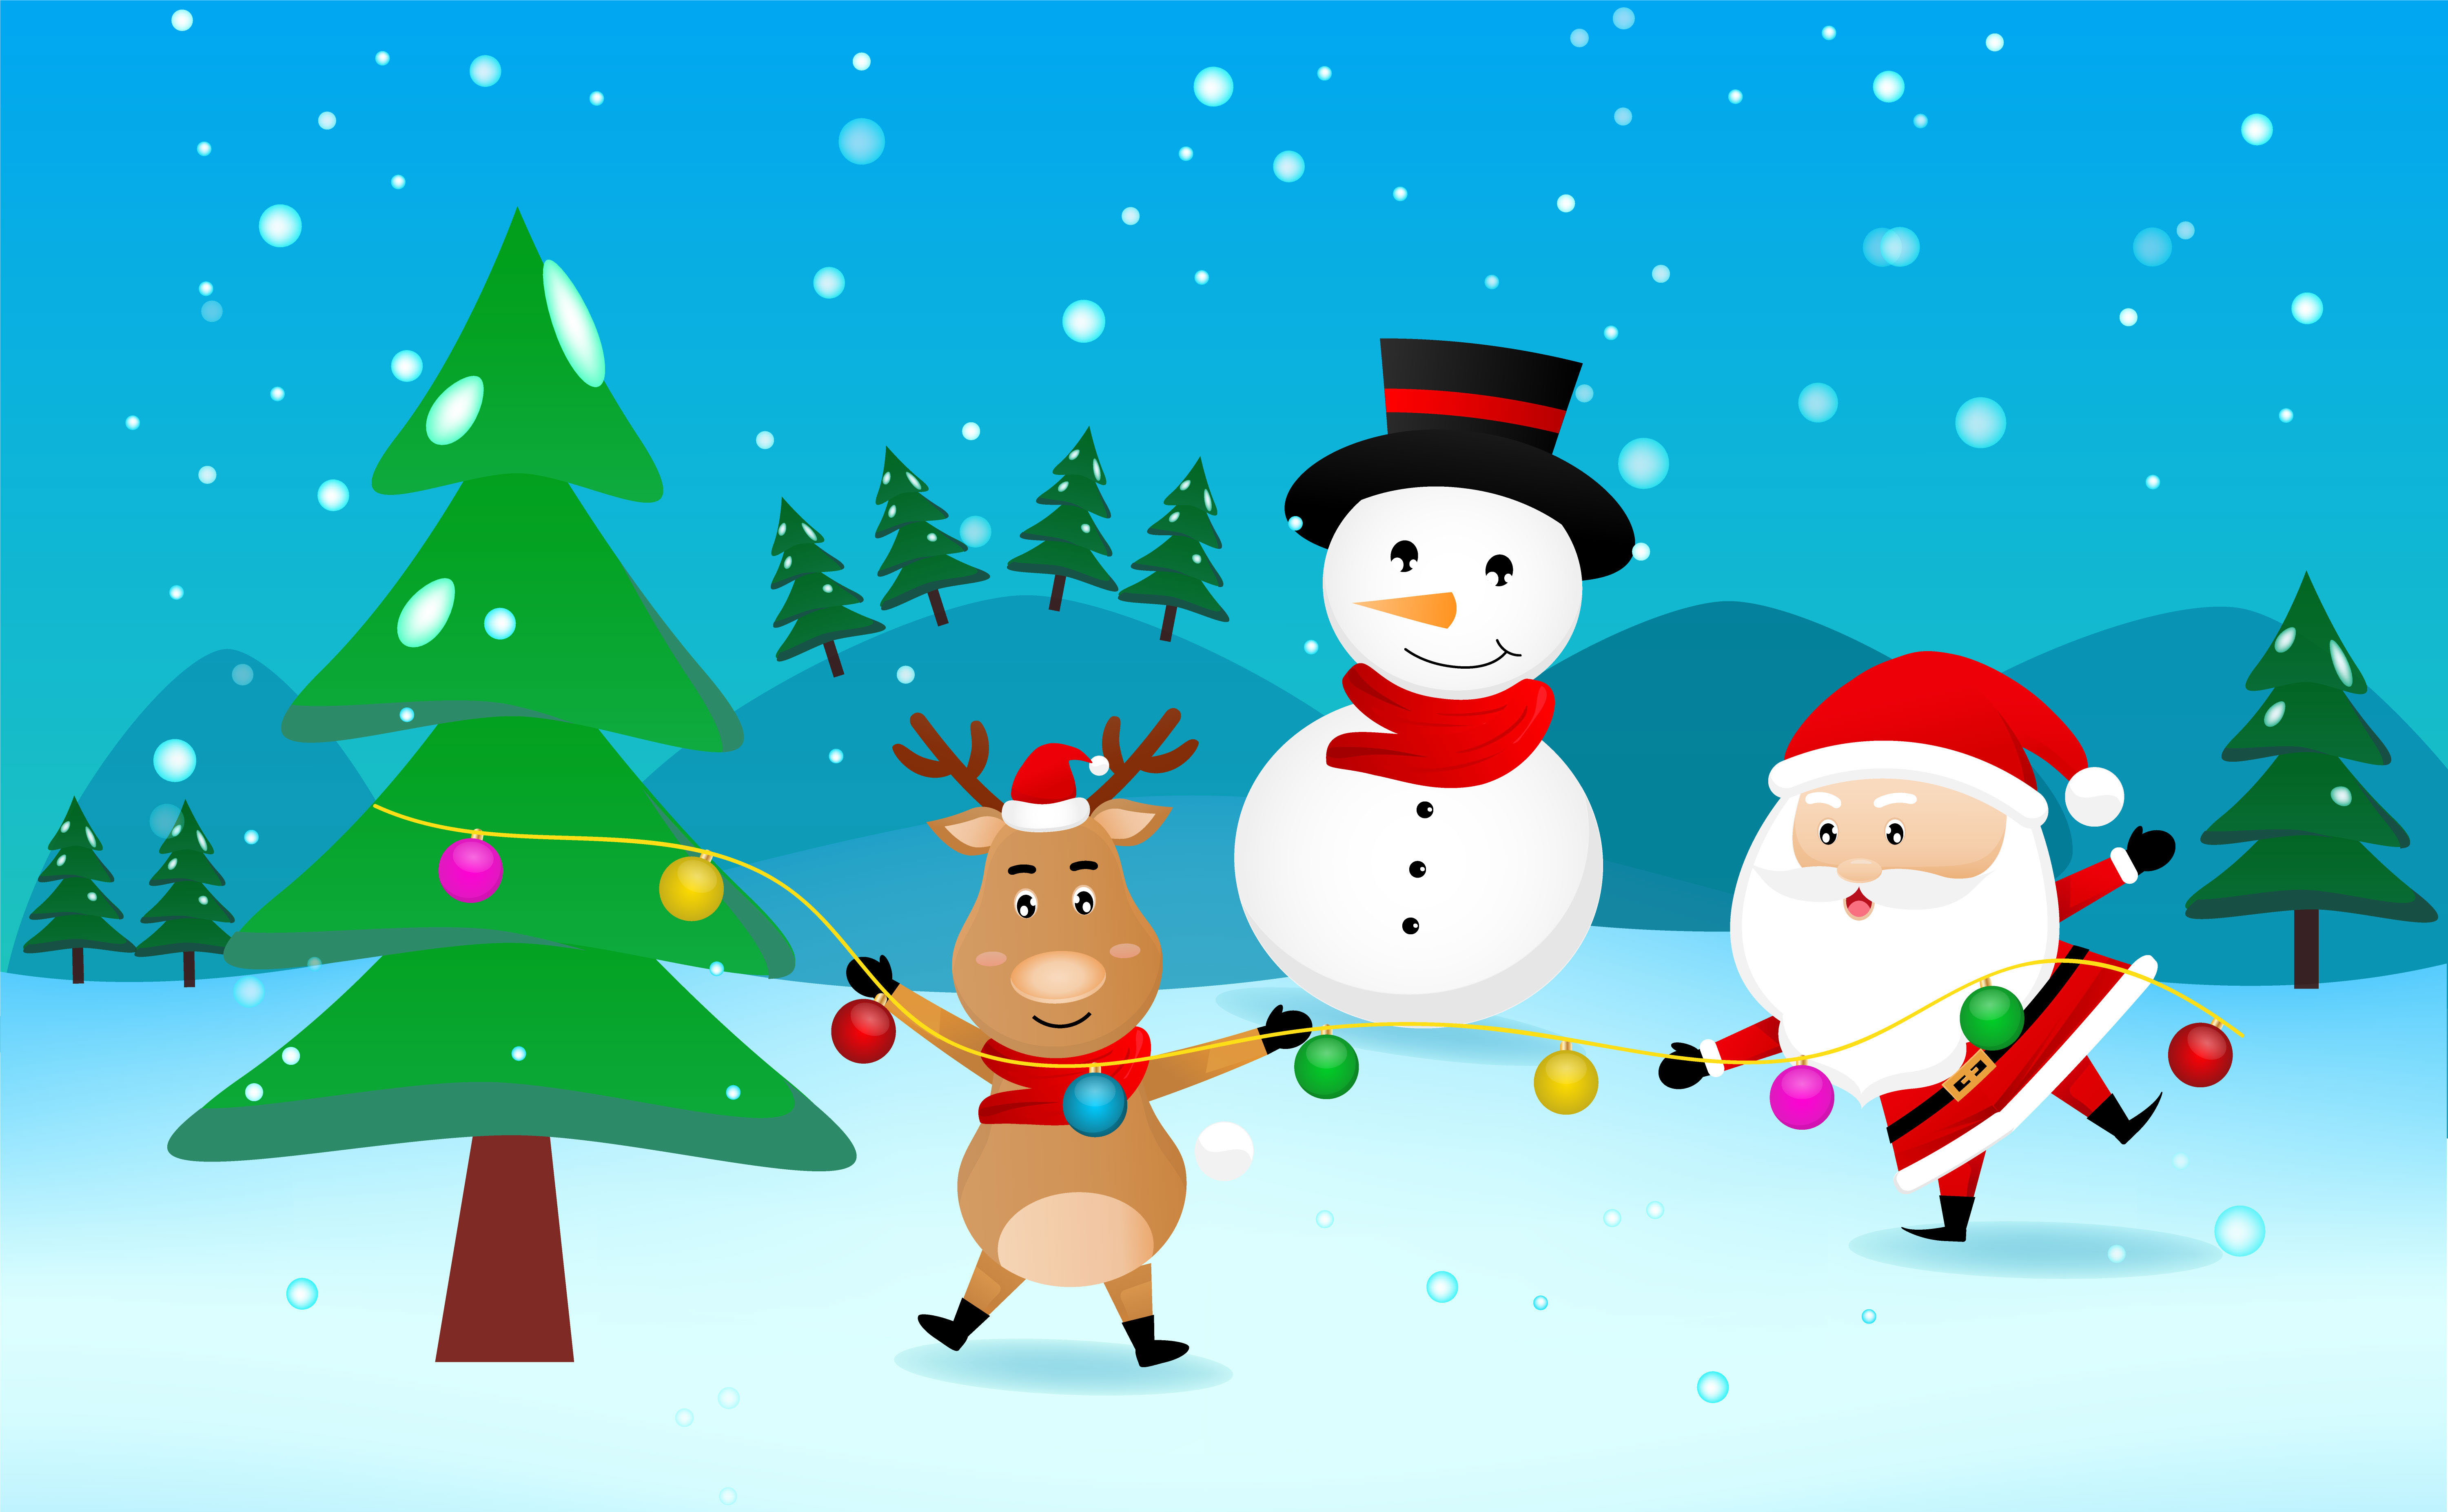 Cheerful Reindeer Santa And Snowman With Christmas Tree Download Free Vectors Clipart Graphics Vector Art